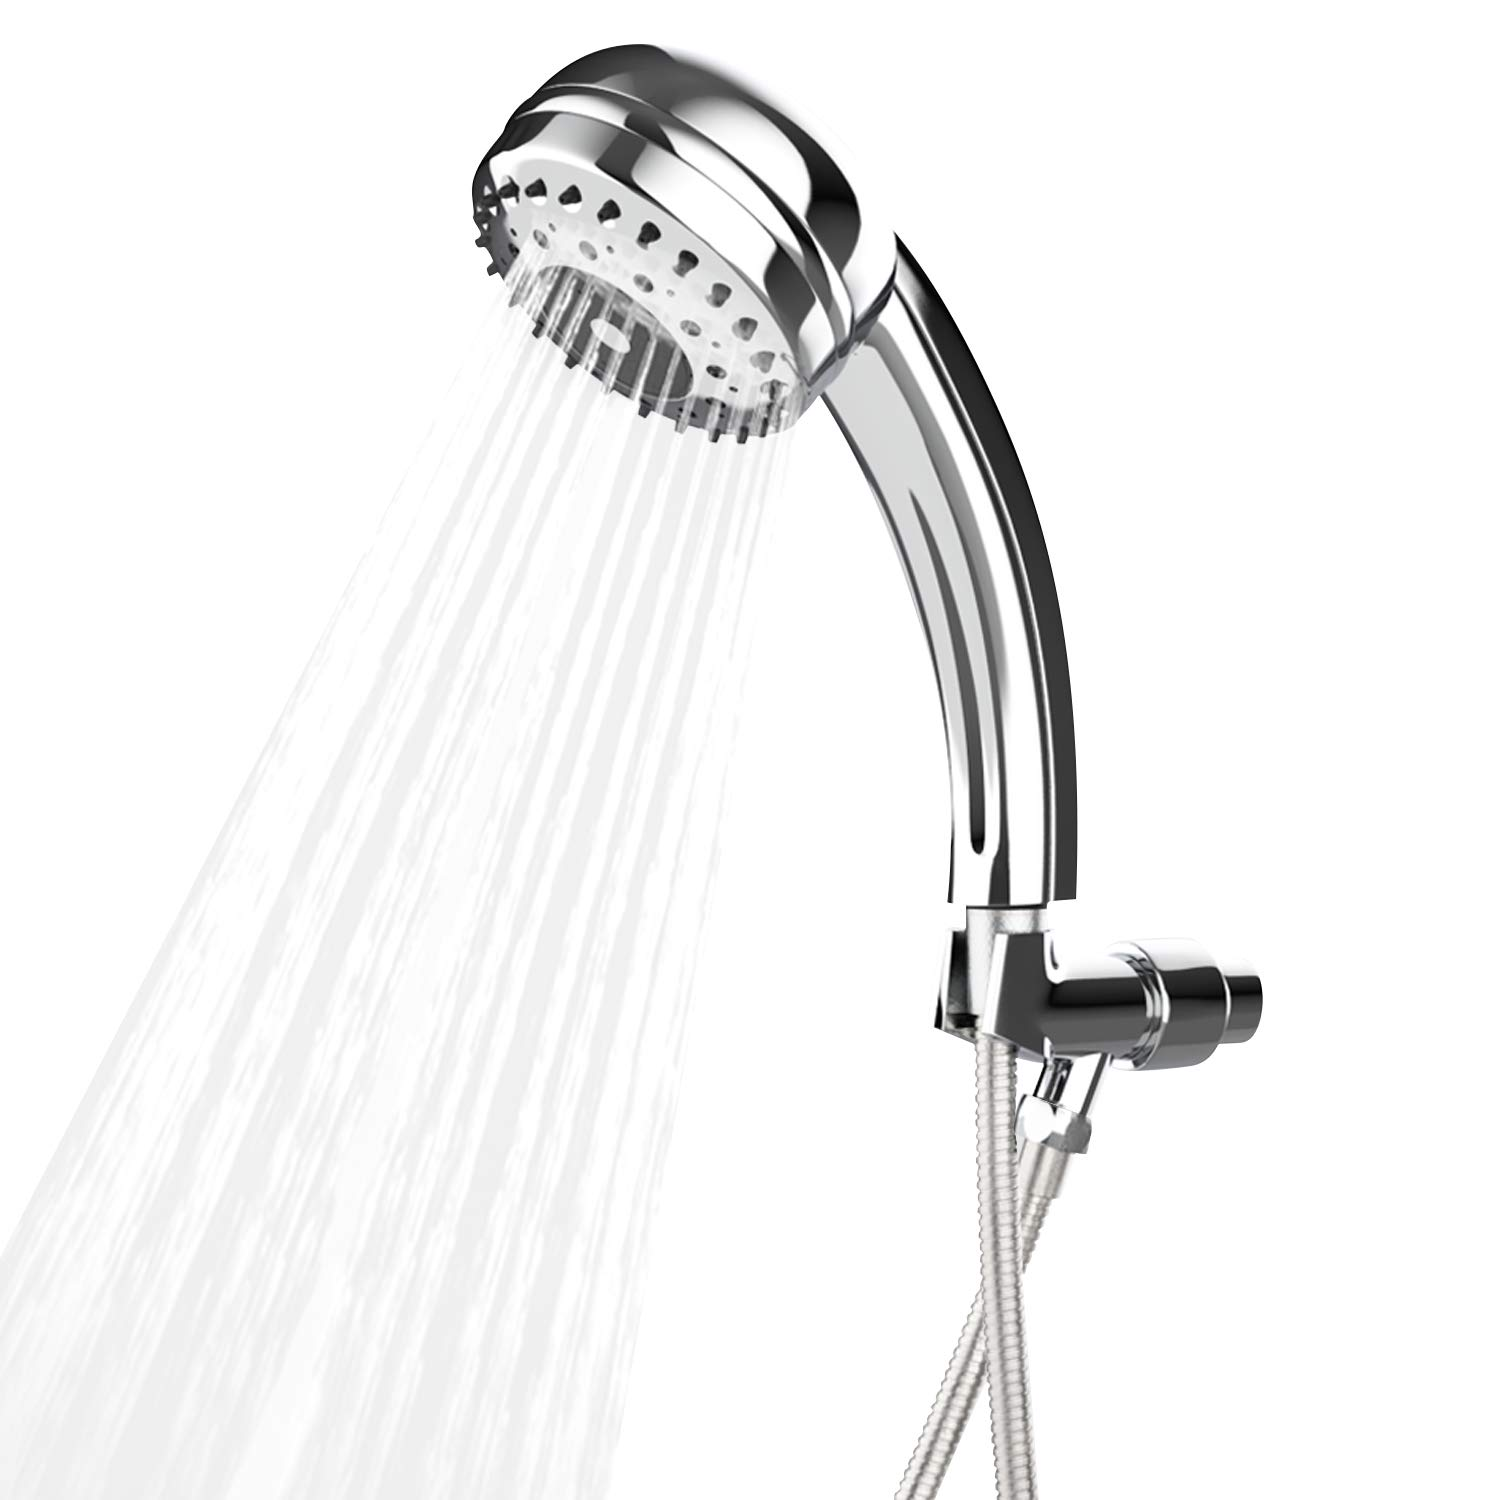 BATHWA 9 Spray Settings Handheld Shower Head Chrome Finish Adjustable Shower Head with Stainless Steel Hose, Silver